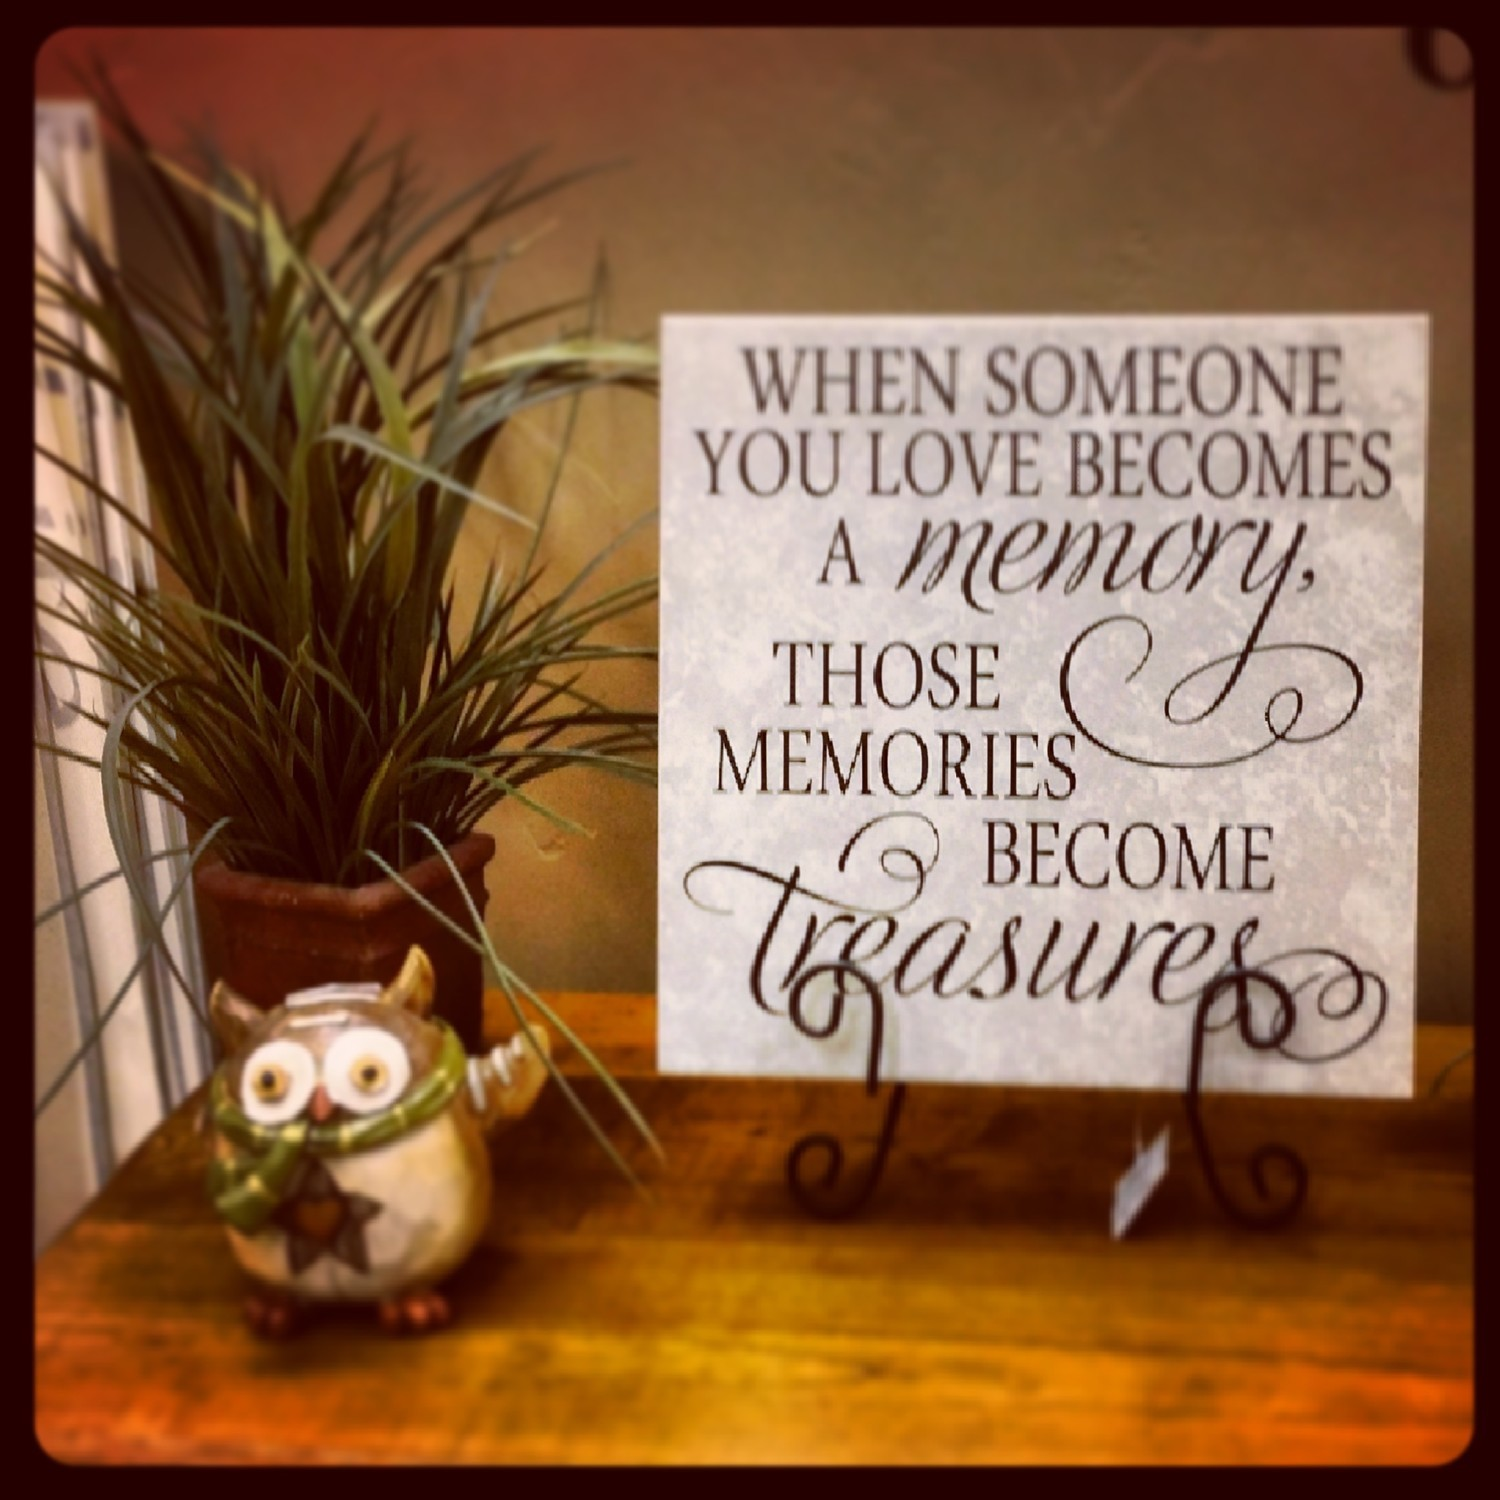 KW137 When someone you love becomes a memory